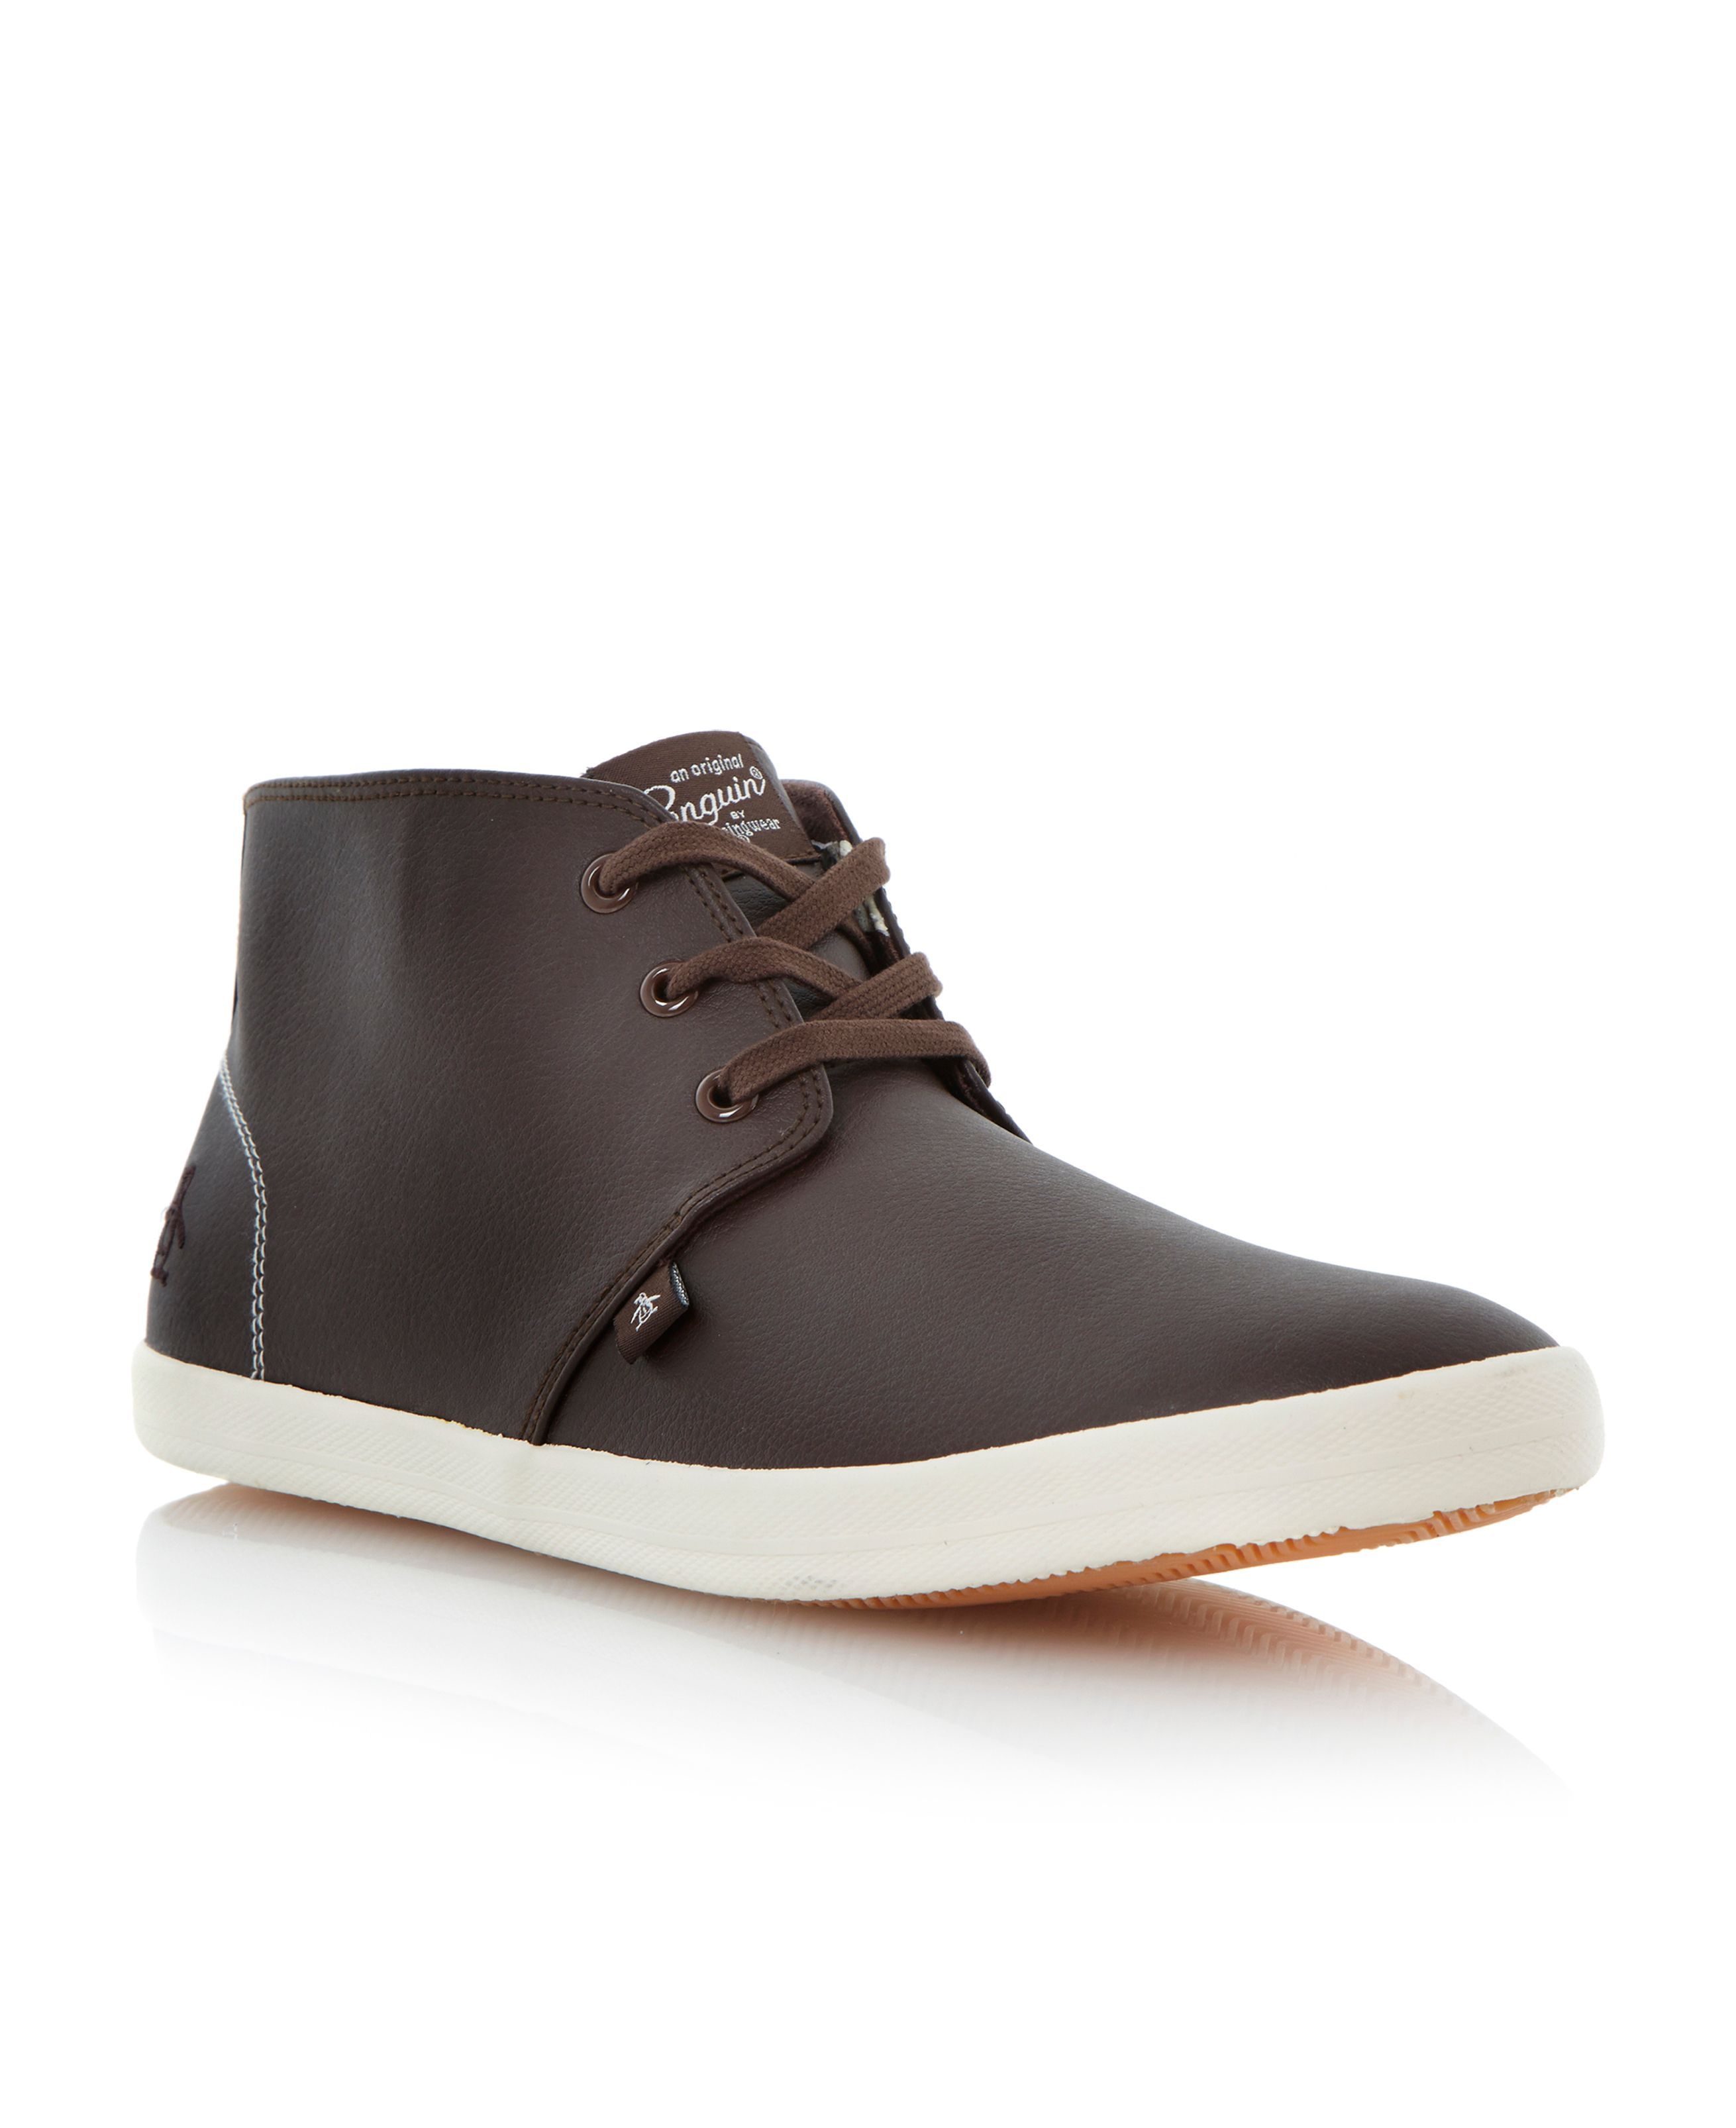 High cliff lace up hi top booties